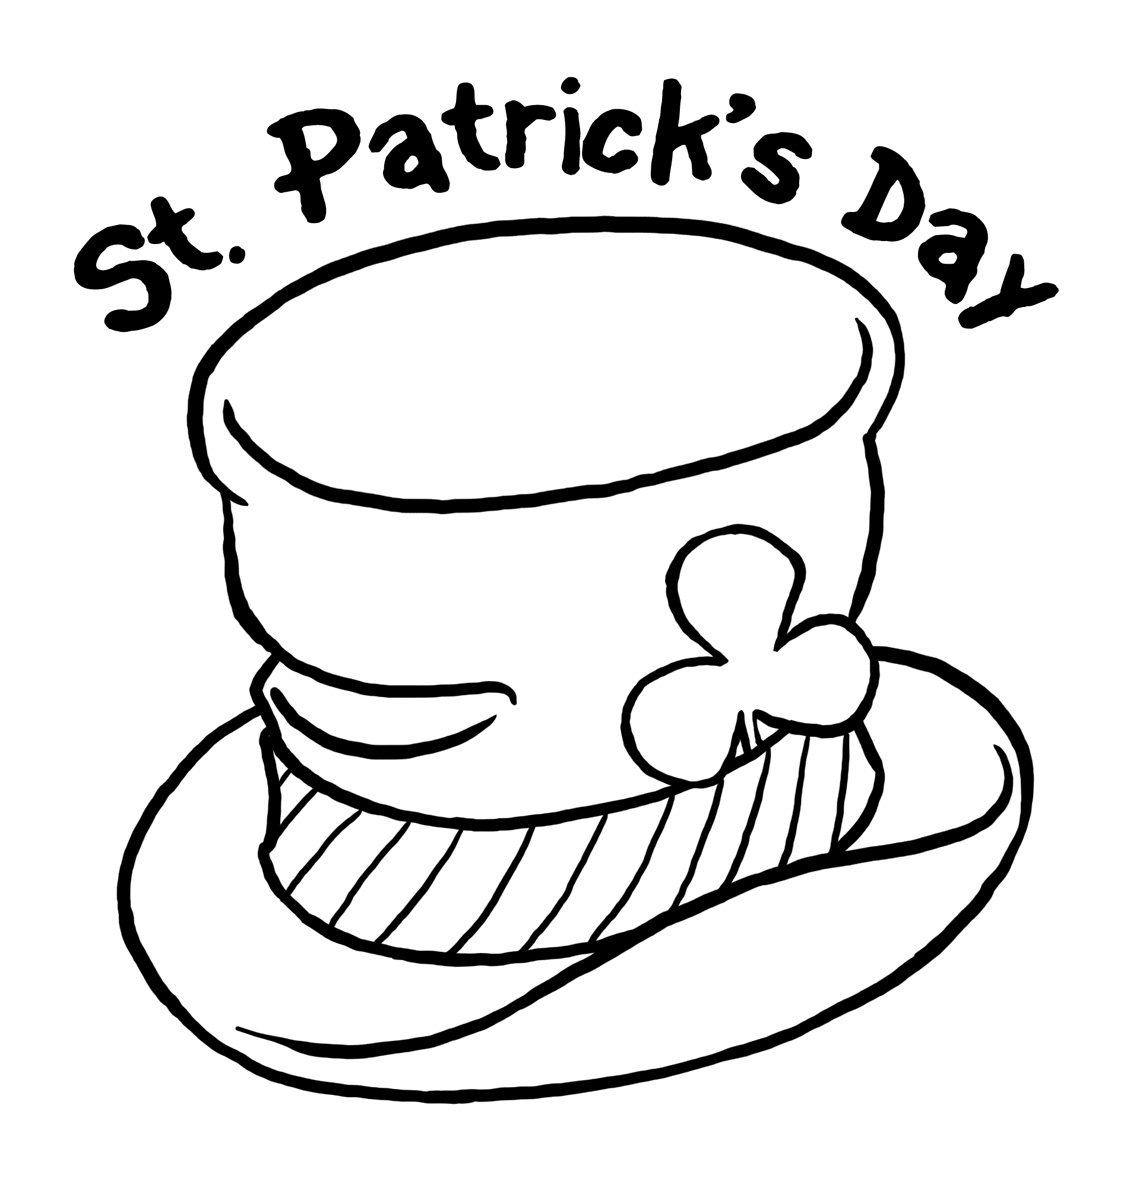 st patricks day coloring pages st patricks day coloring pages free printable download